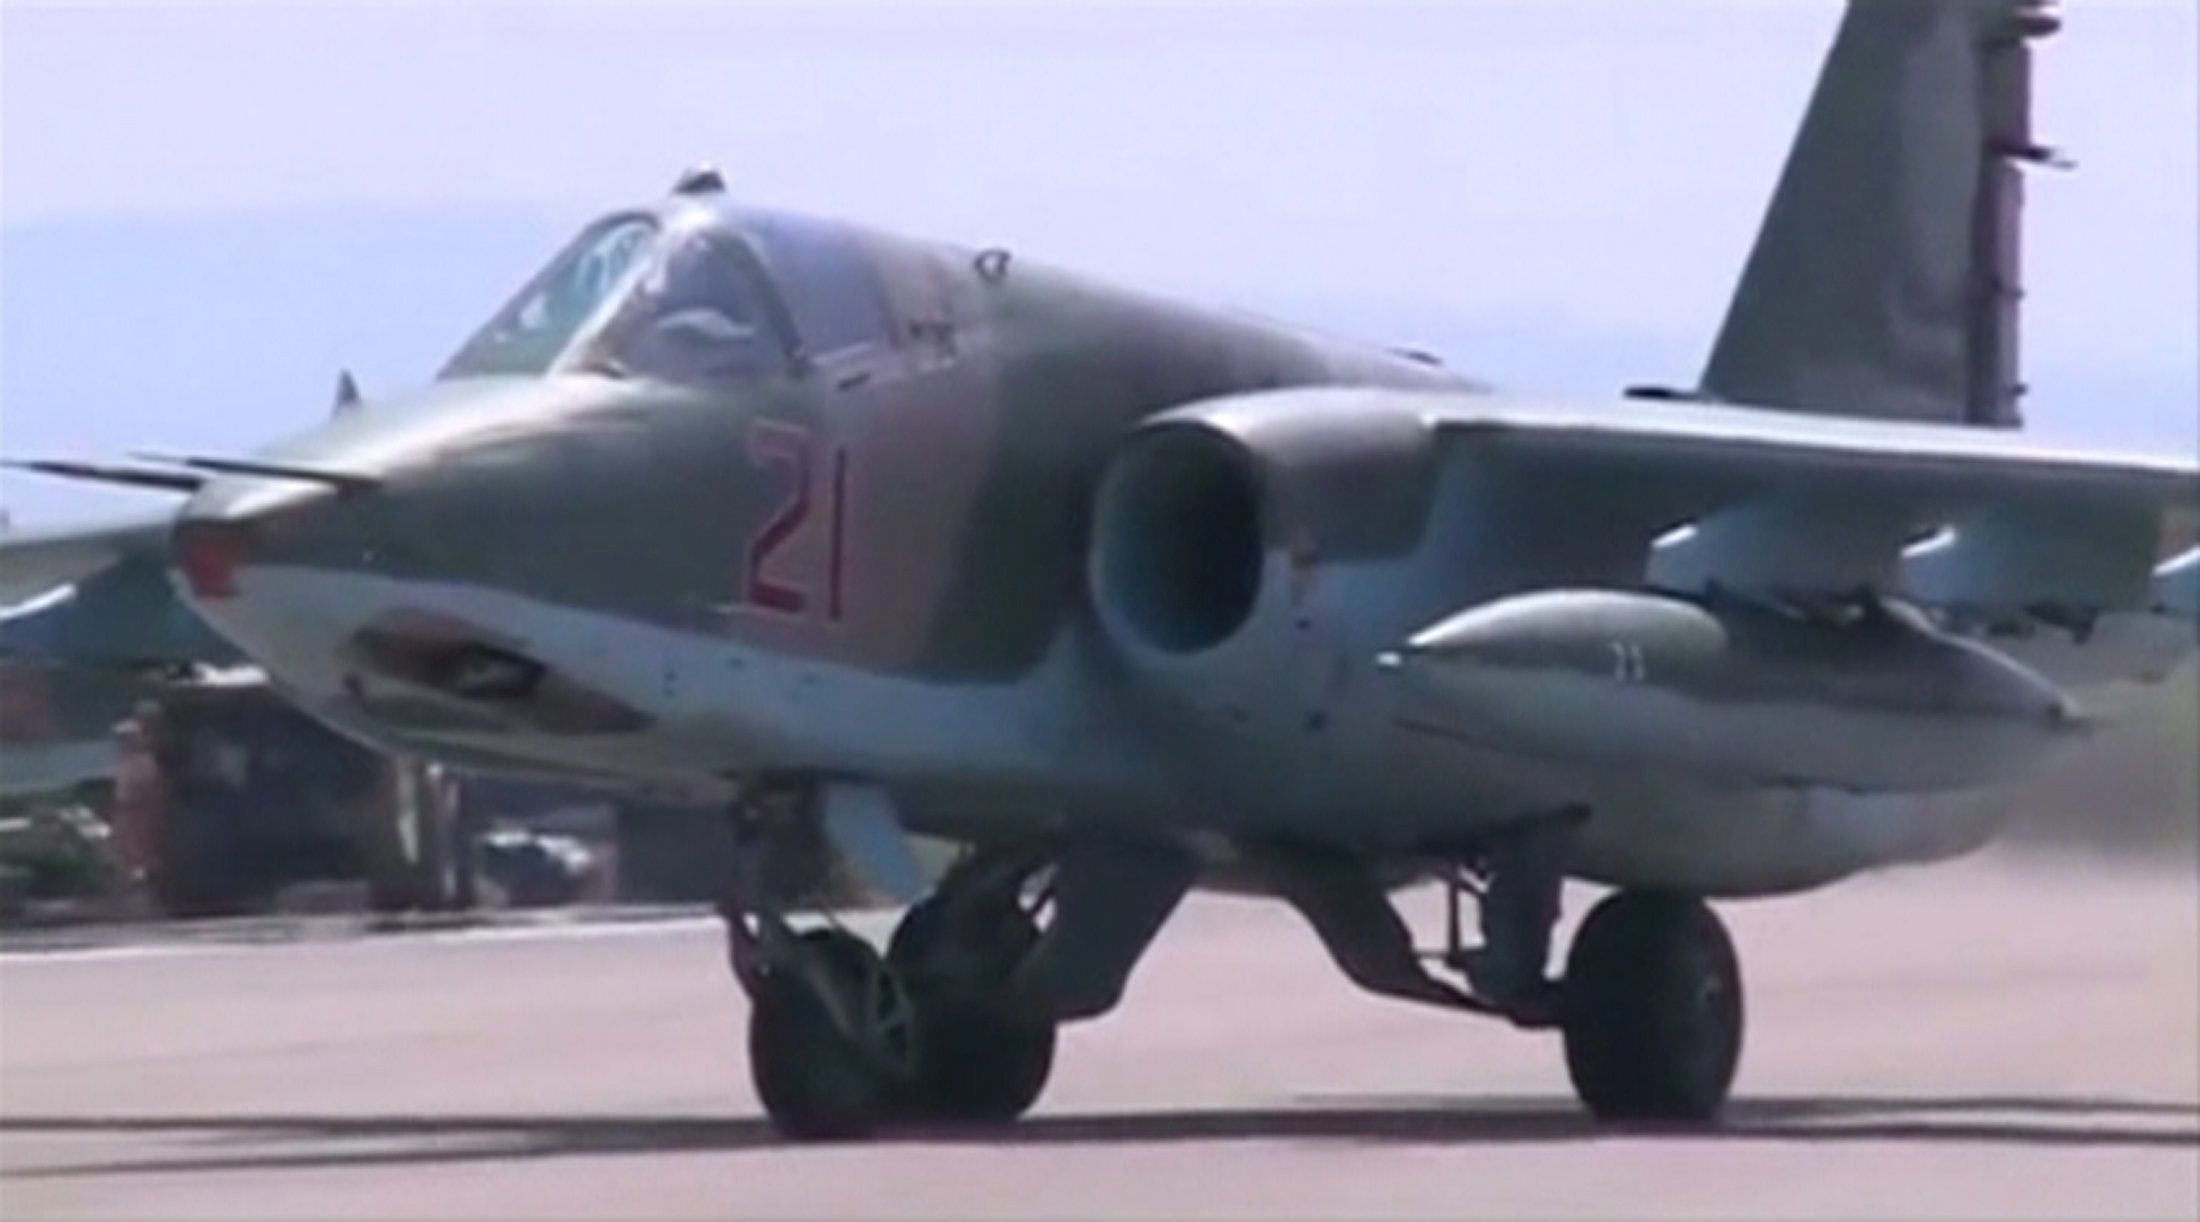 A frame grab taken from footage released by Russia's Defence Ministry October 5, 2015, shows a Russian air force jet taxiing on the tarmac of Heymim air base in Syria. More than 40 Syrian insurgent groups including the powerful Islamist faction Ahrar al-Sham have called on regional states to forge an alliance against Russia and Iran in Syria, accusing Moscow of occupying the country and targeting civilians. REUTERS/Ministry of Defence of the Russian Federation/Handout via Reuters  ATTENTION EDITORS - FOR EDITORIAL USE ONLY. NOT FOR SALE FOR MARKETING OR ADVERTISING CAMPAIGNS. THIS IMAGE HAS BEEN SUPPLIED BY A THIRD PARTY. IT IS DISTRIBUTED, EXACTLY AS RECEIVED BY REUTERS, AS A SERVICE TO CLIENTS. REUTERS IS UNABLE TO INDEPENDENTLY VERIFY THE AUTHENTICITY, CONTENT, LOCATION OR DATE OF THIS IMAGE. FOR EDITORIAL USE ONLY. NO SALES.